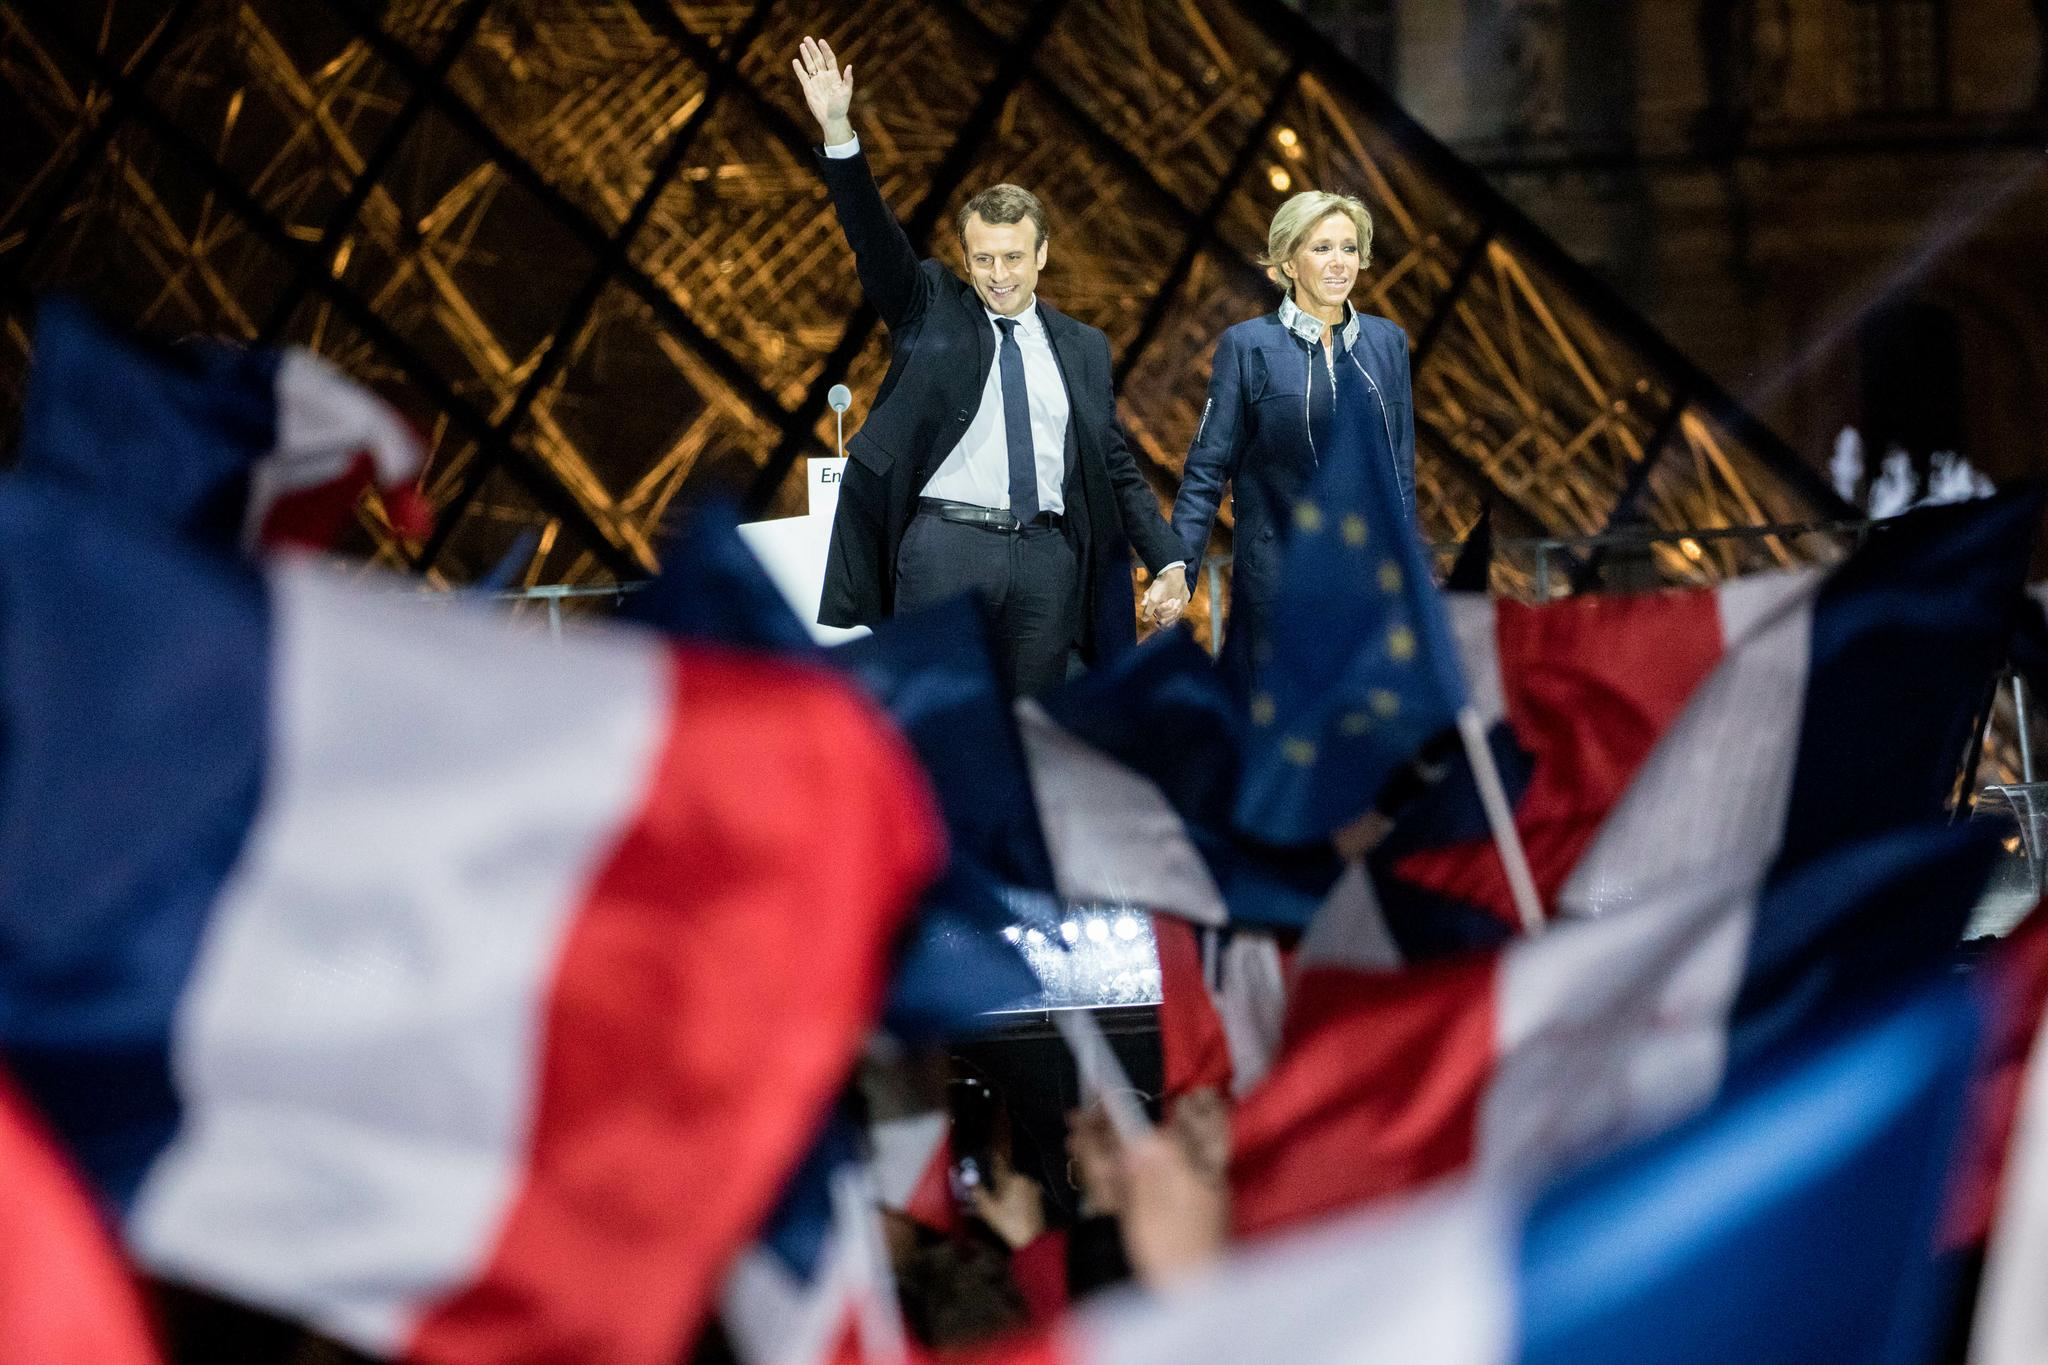 French president-elect Emmanuel Macron waves to the crowd at the Pyramid at the Louvre Museum in Paris on May 7. Emmanuel Macron was elected French president in a resounding victory over far-right National Front rival Marine Le Pen after a deeply divisive campaign.